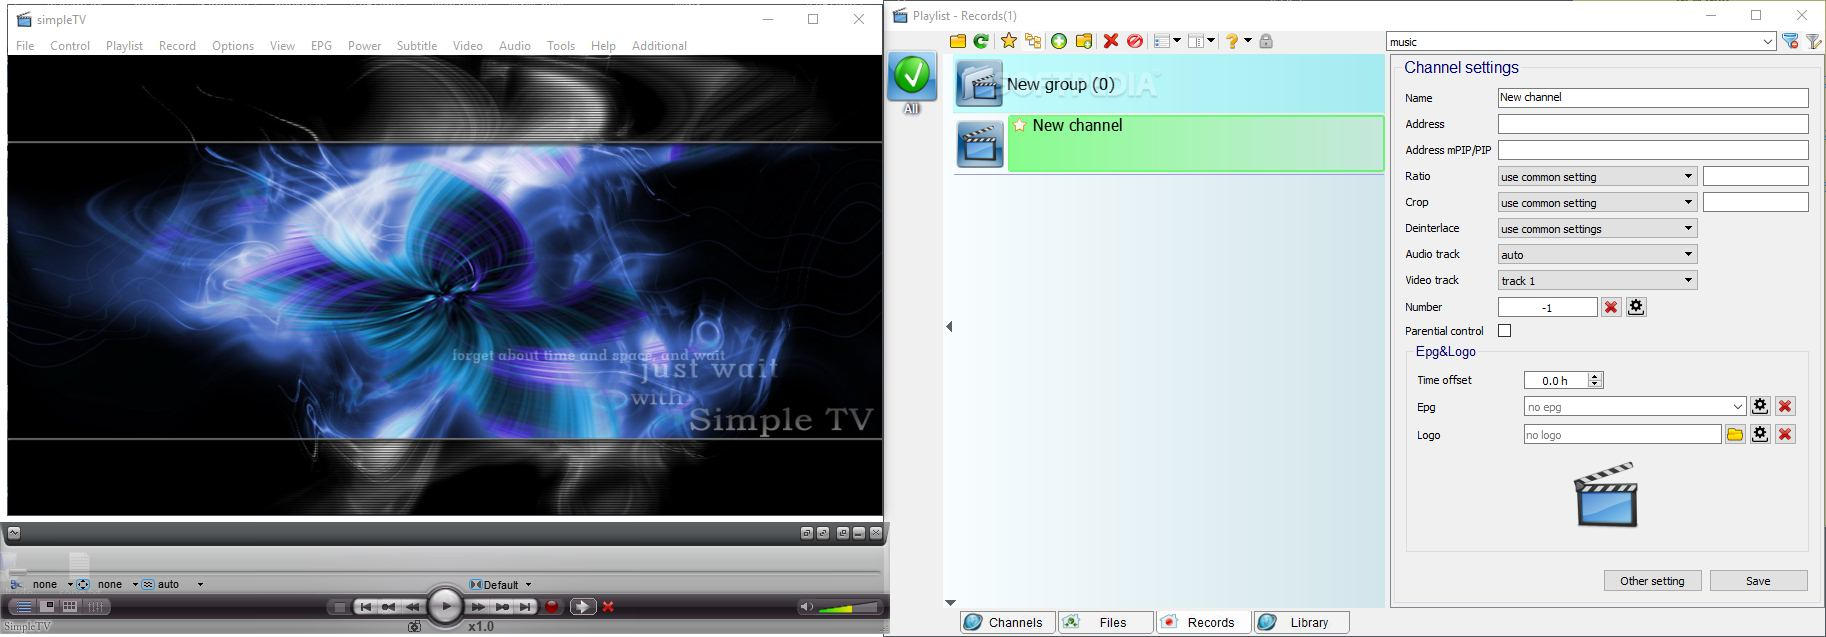 iptv player simpletv tv 0.4.6